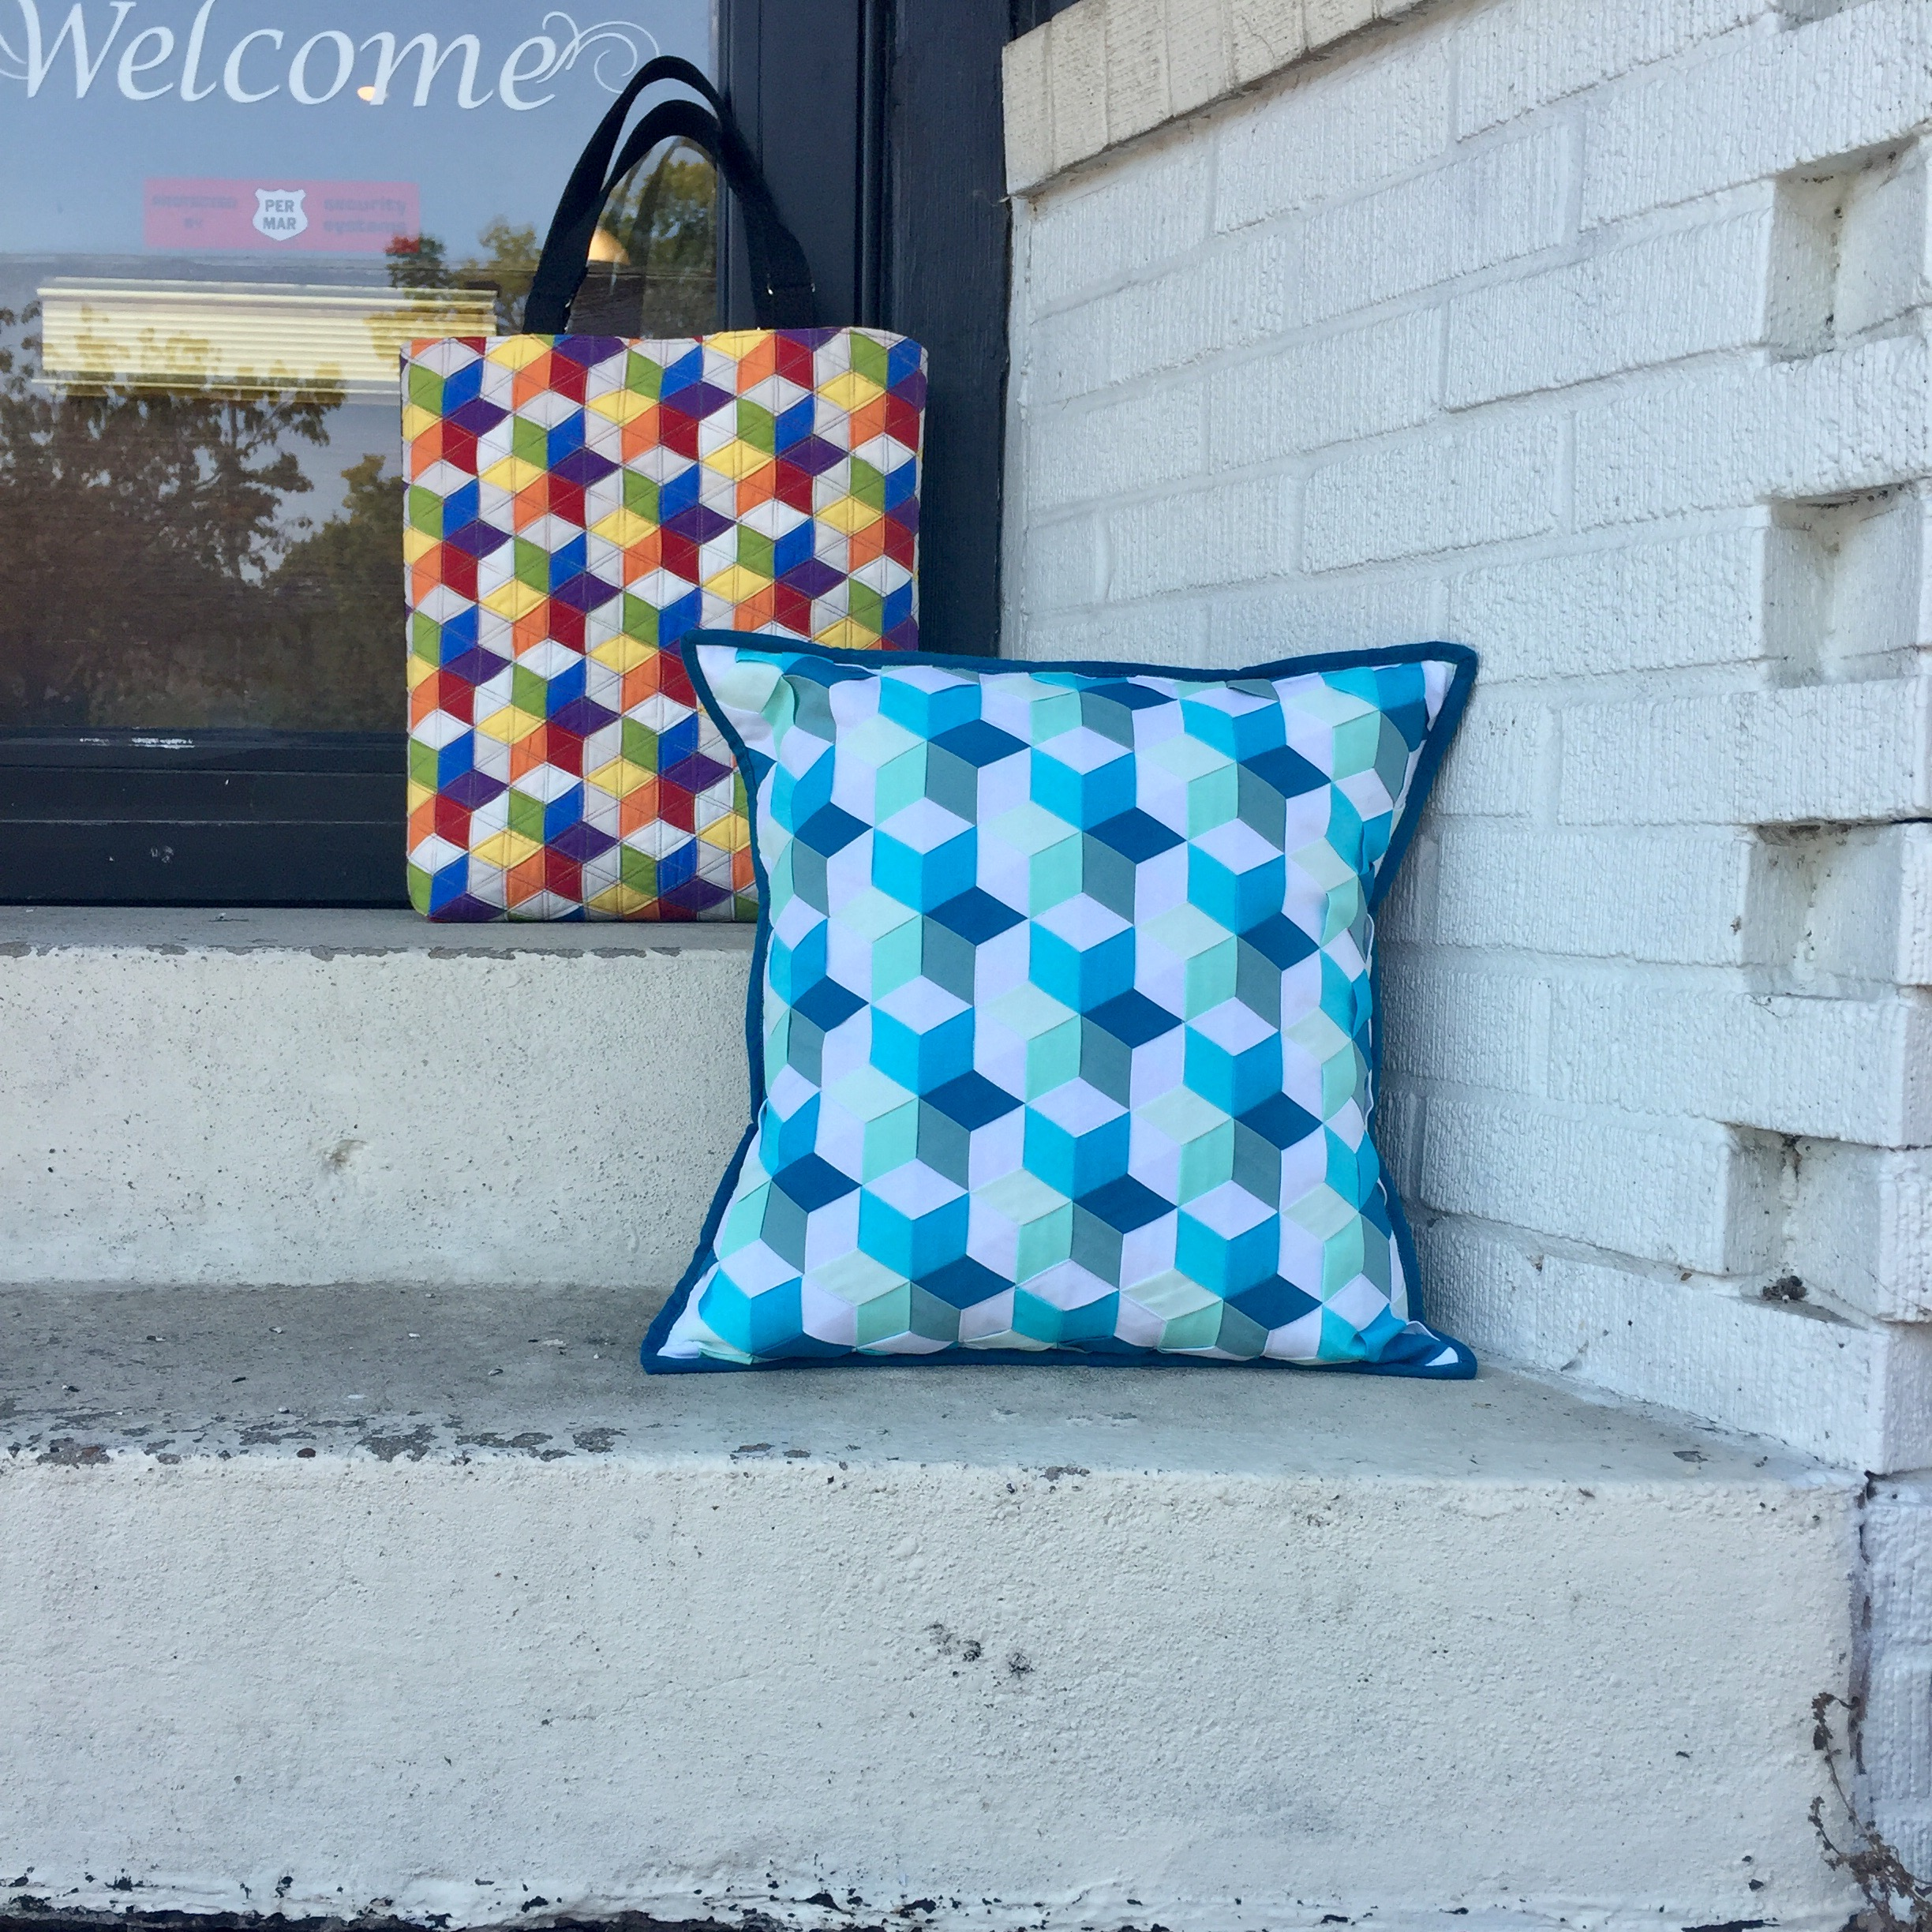 The Rainbow Stars Tote and Ocean Stars Pillow, both made of American Made Brand solids.